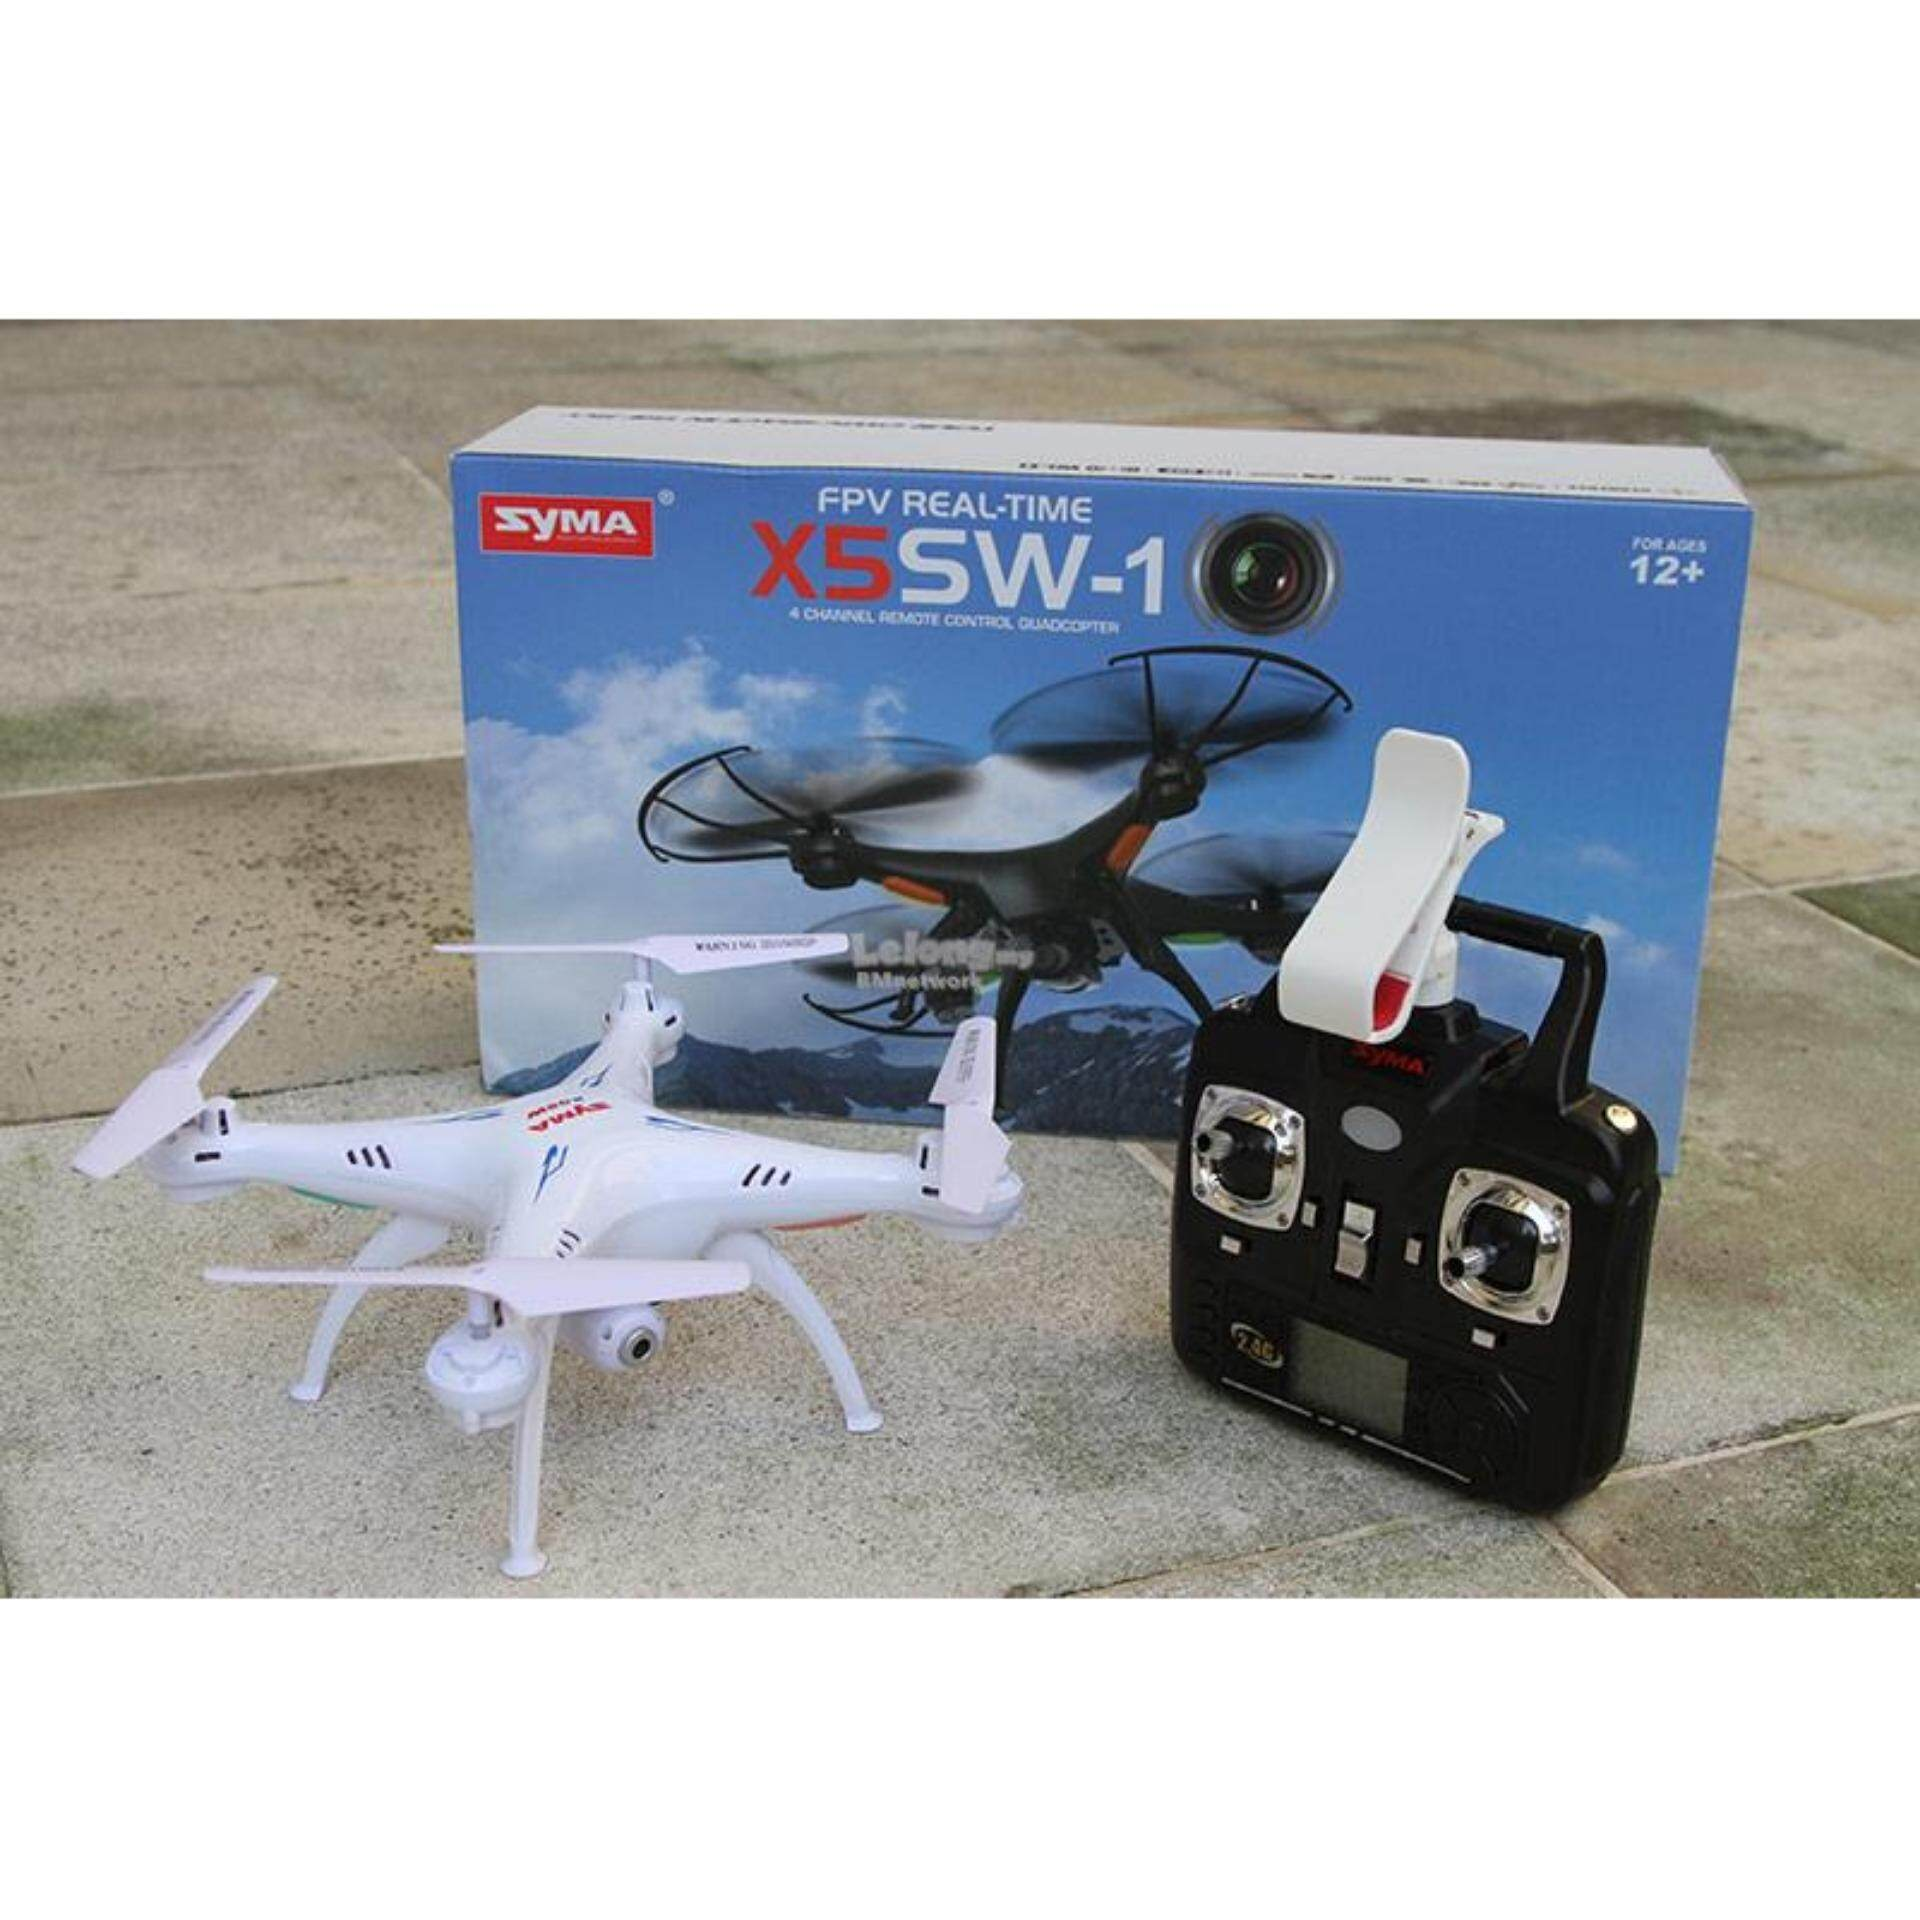 Original Syma X5SW Drone 2.4GHz Real Time WiFi FPV 6 Axis Quadcopter + 1 extra battery